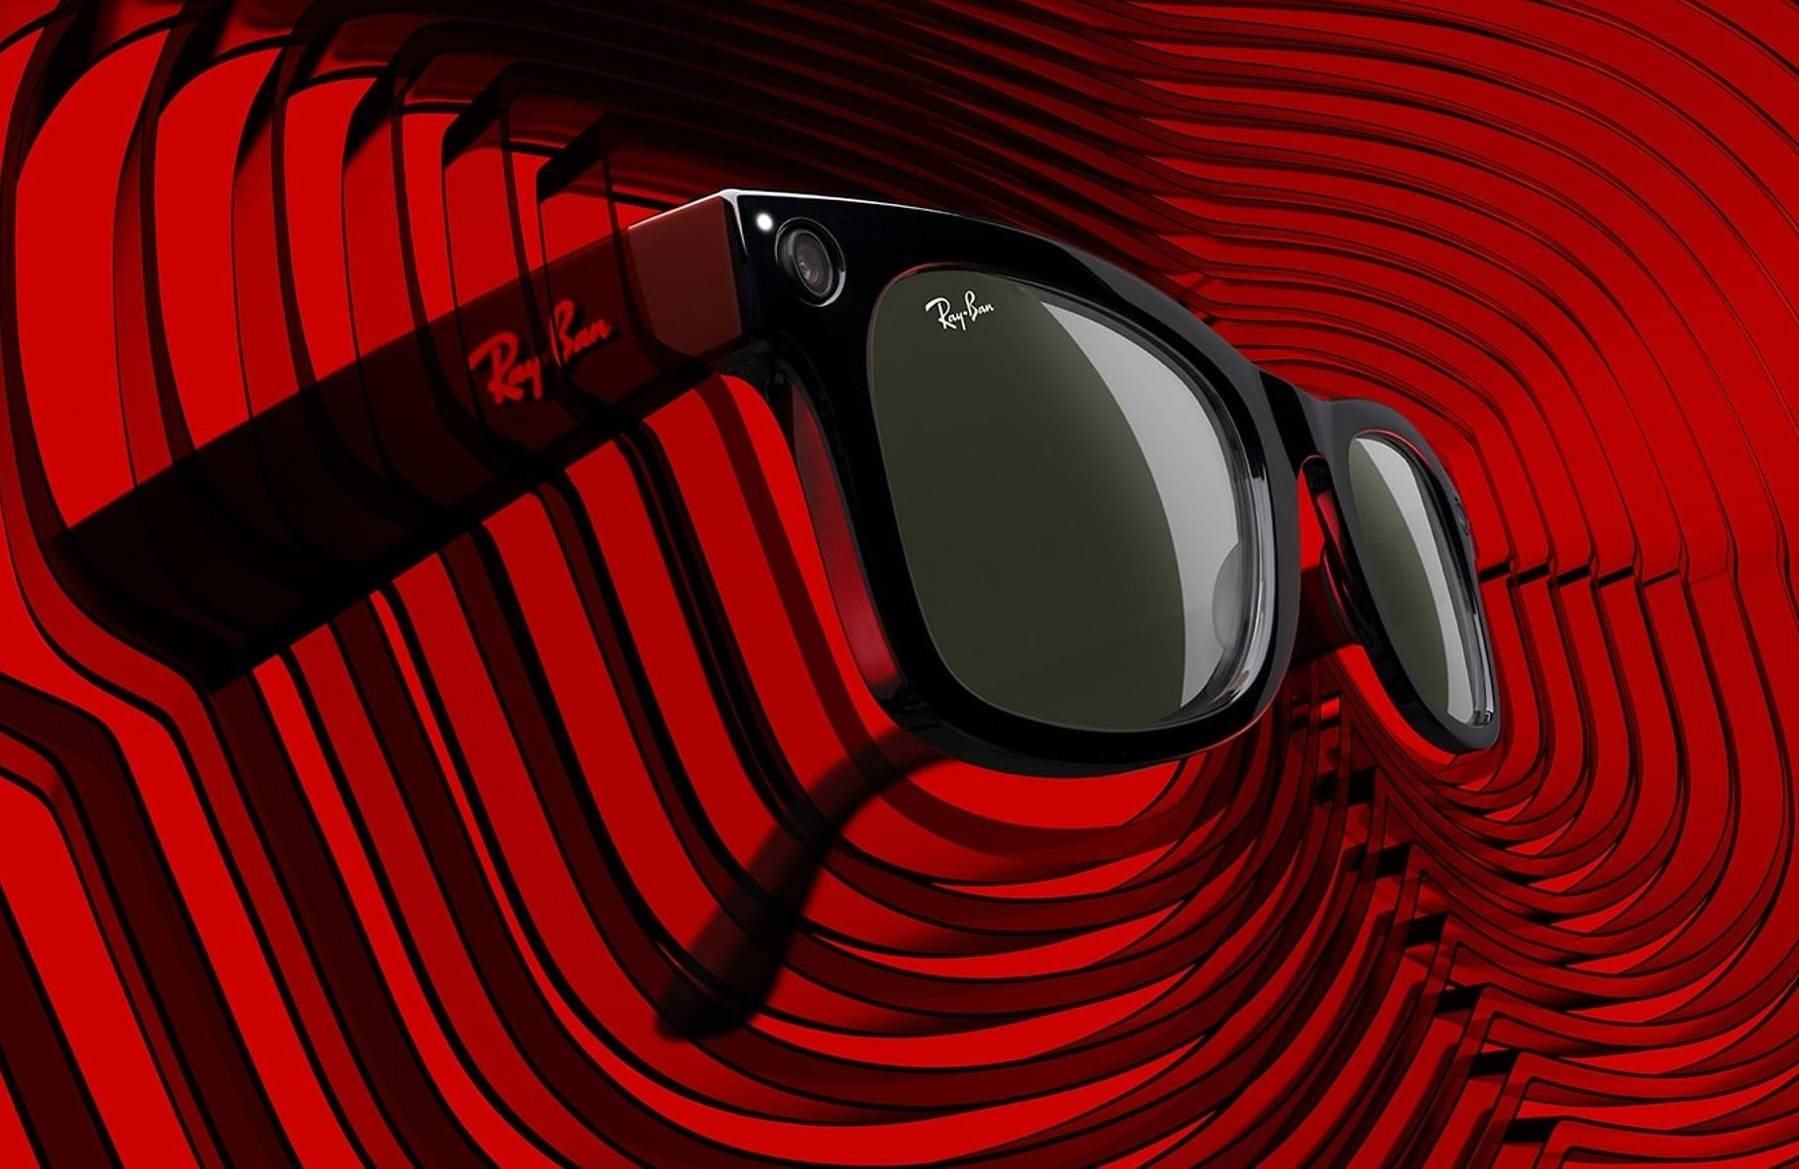 ray-ban stories and the new way to capture